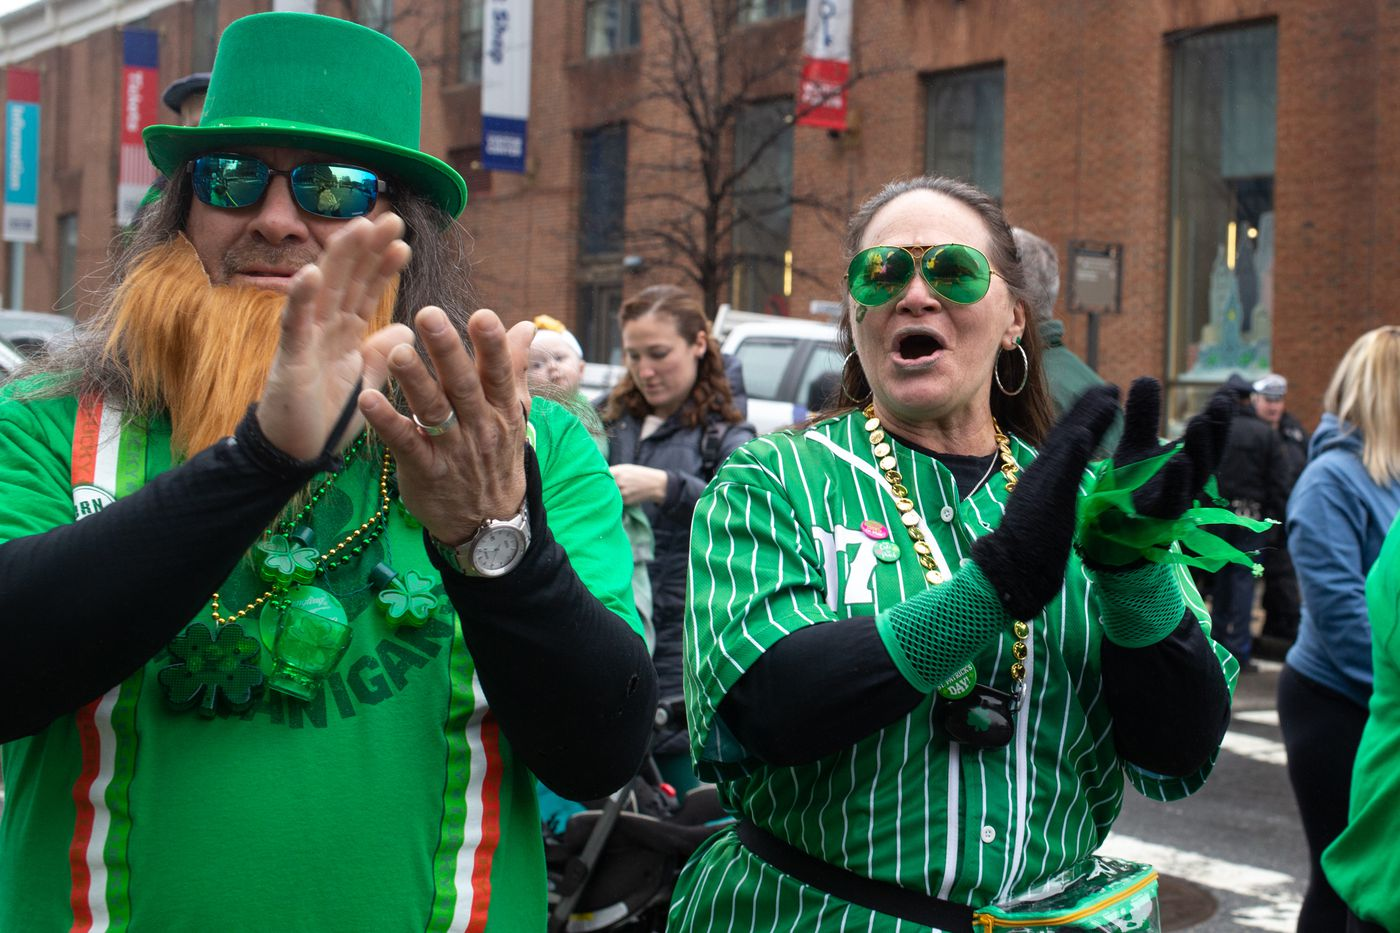 Mary Aguilar and her husband, J.R., both of Northeast Philadelphia, cheer during last year's St. Patrick's Day Parade.